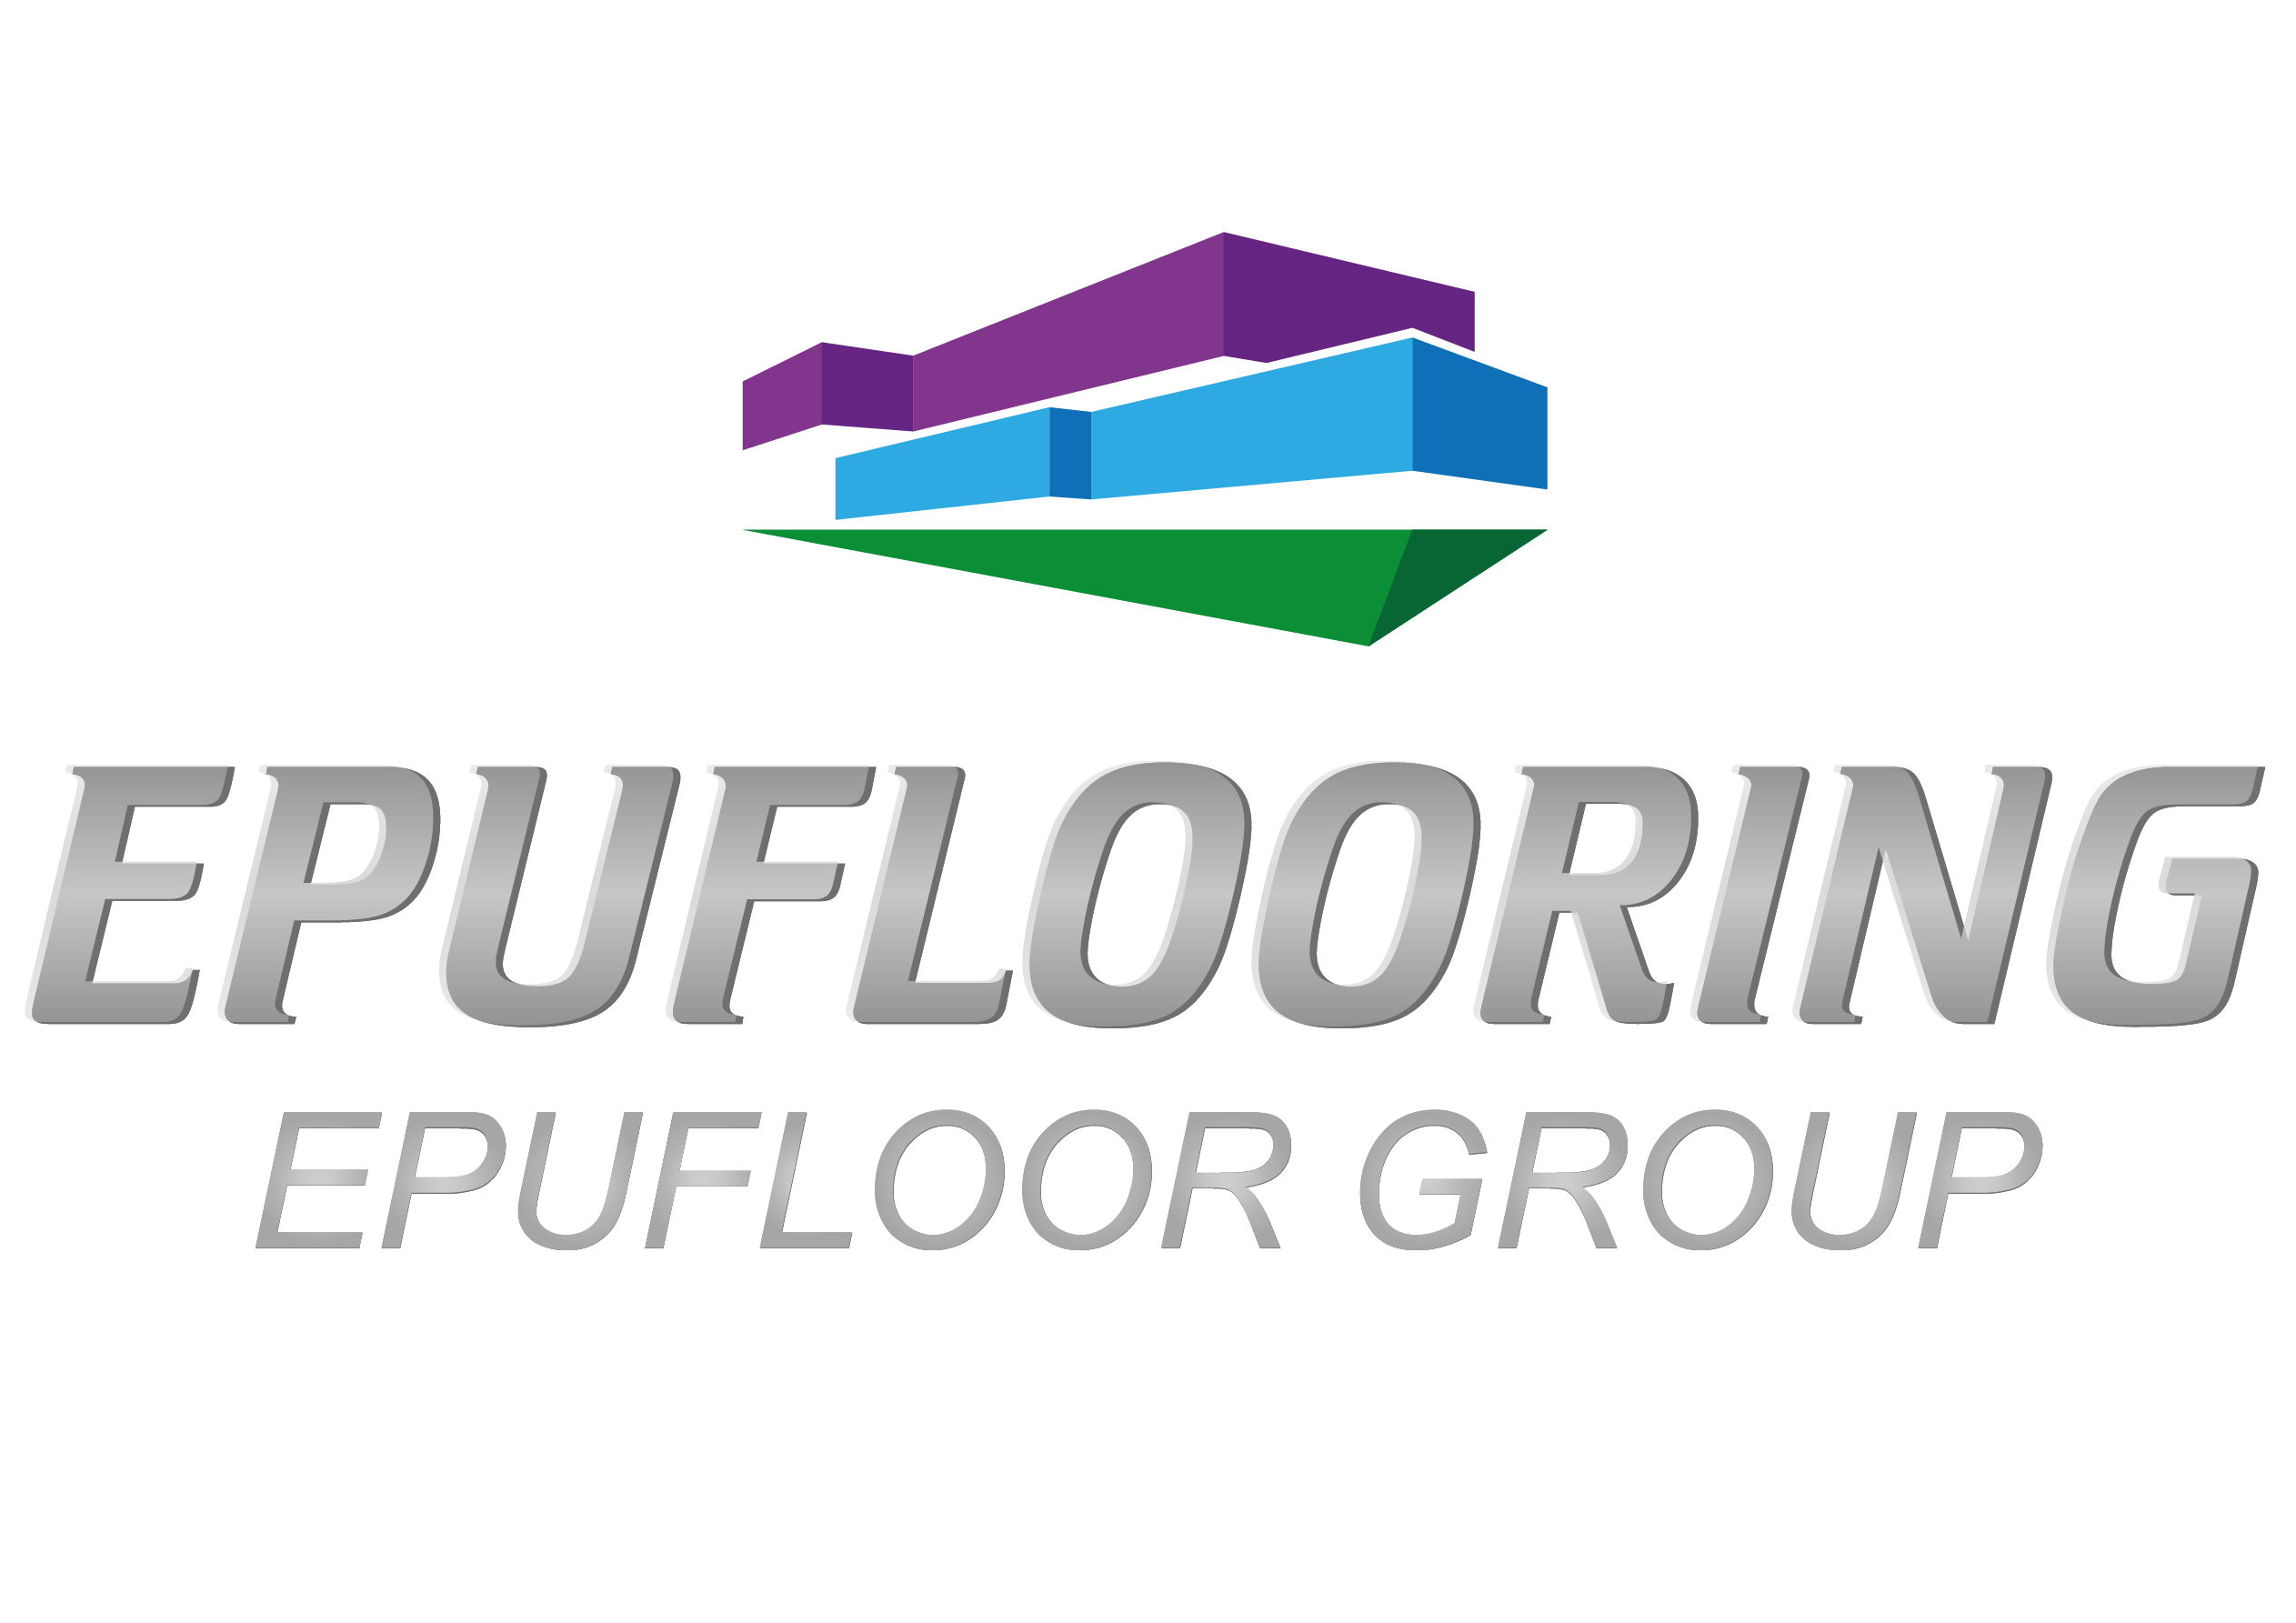 EPUFLOORING GROUP LOGO-01